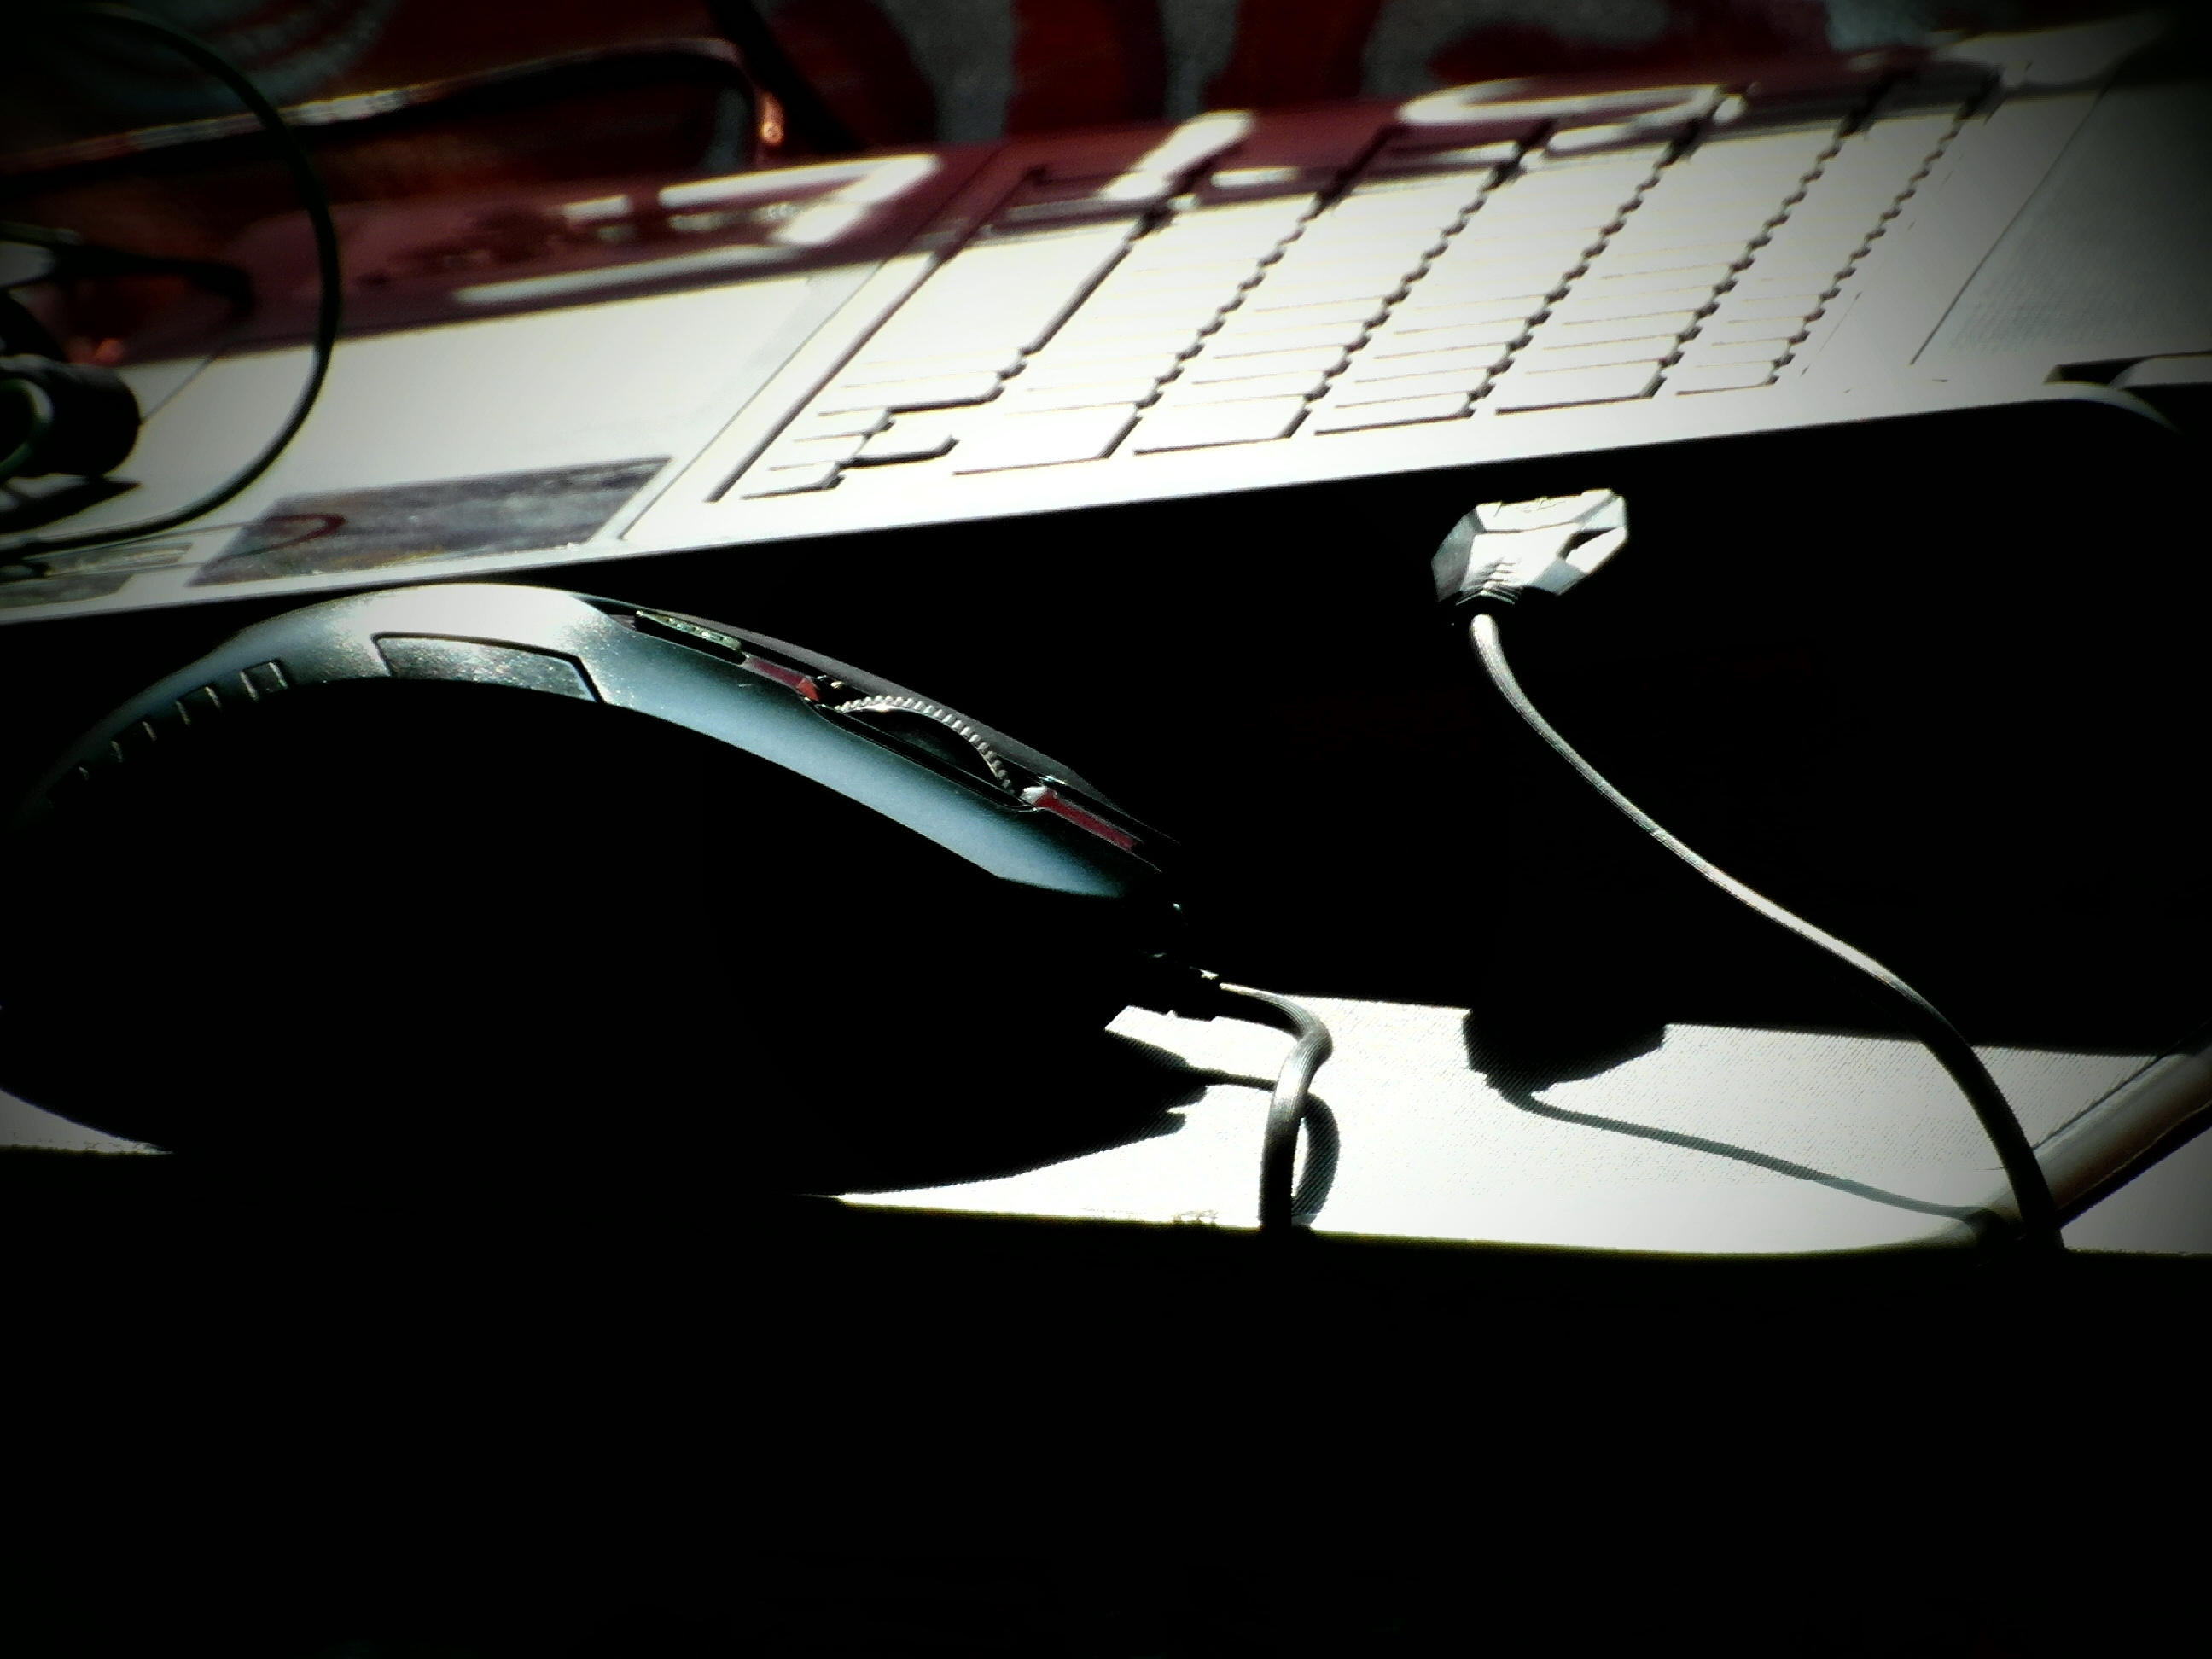 Laptop and Mouse in Shadows, Black, Notebook, Work, Technology, HQ Photo